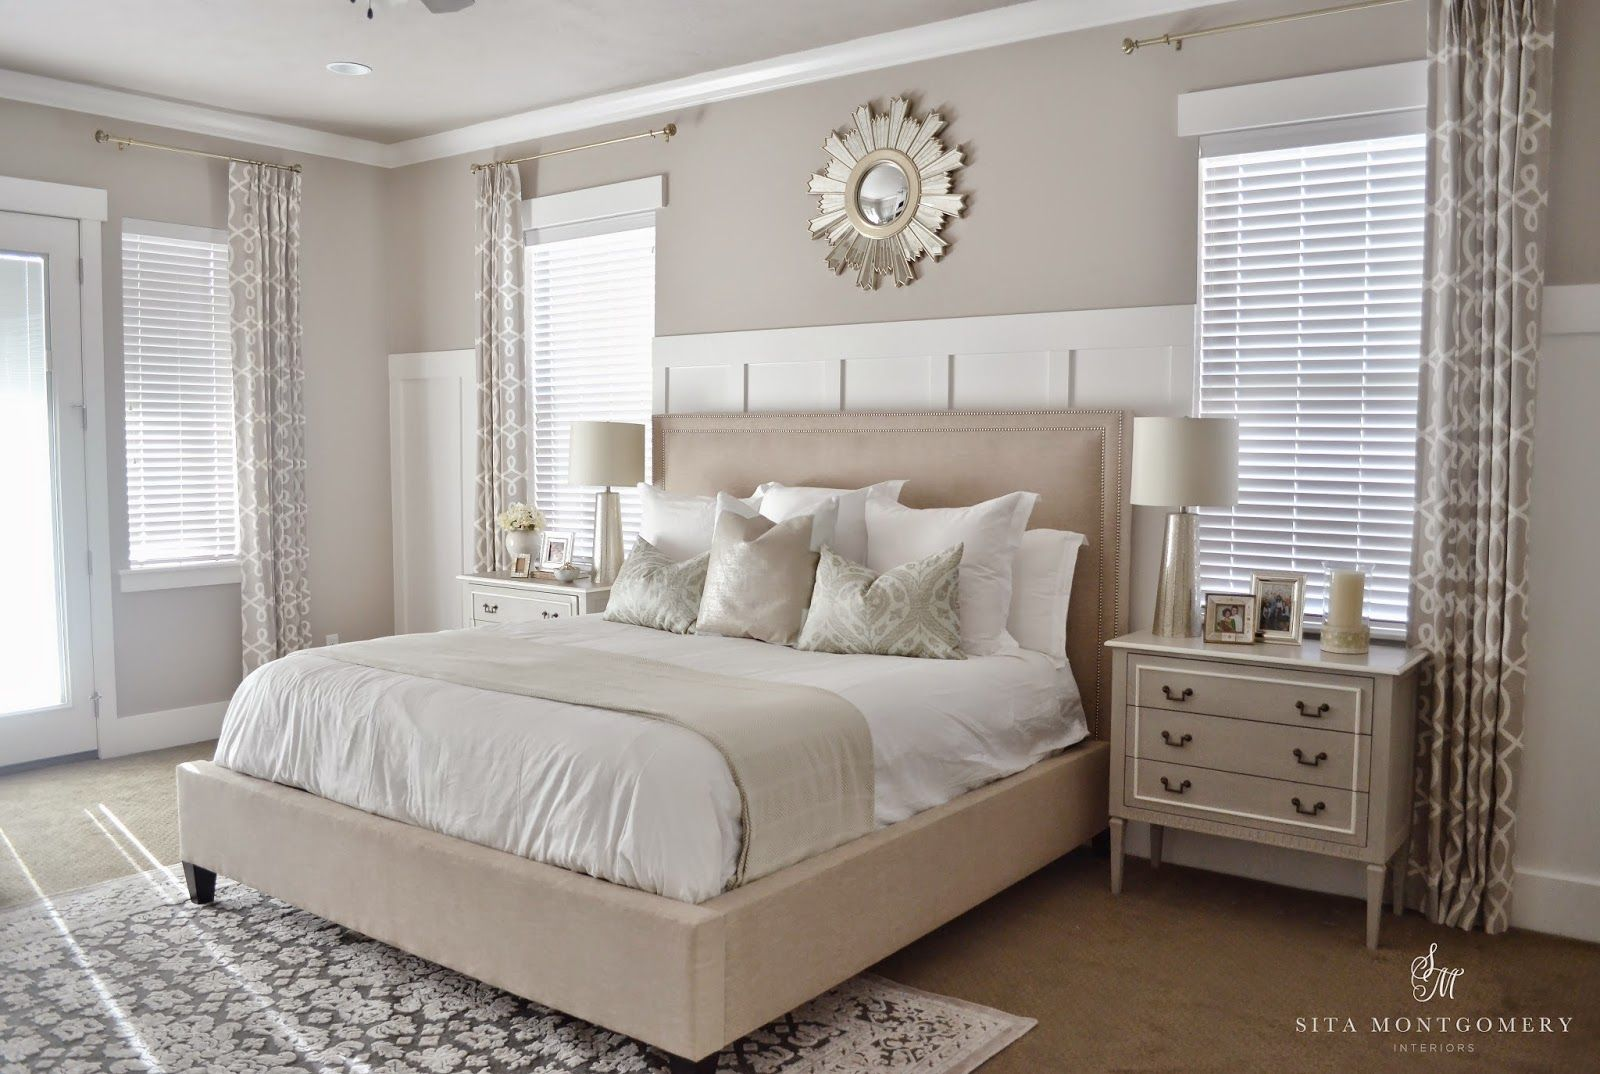 Wainscoting master bedroom - Sita Montgomery Interiors My Master Bedroom Refresh Reveal Fresh Colors White Wainscoting Focal Mirror